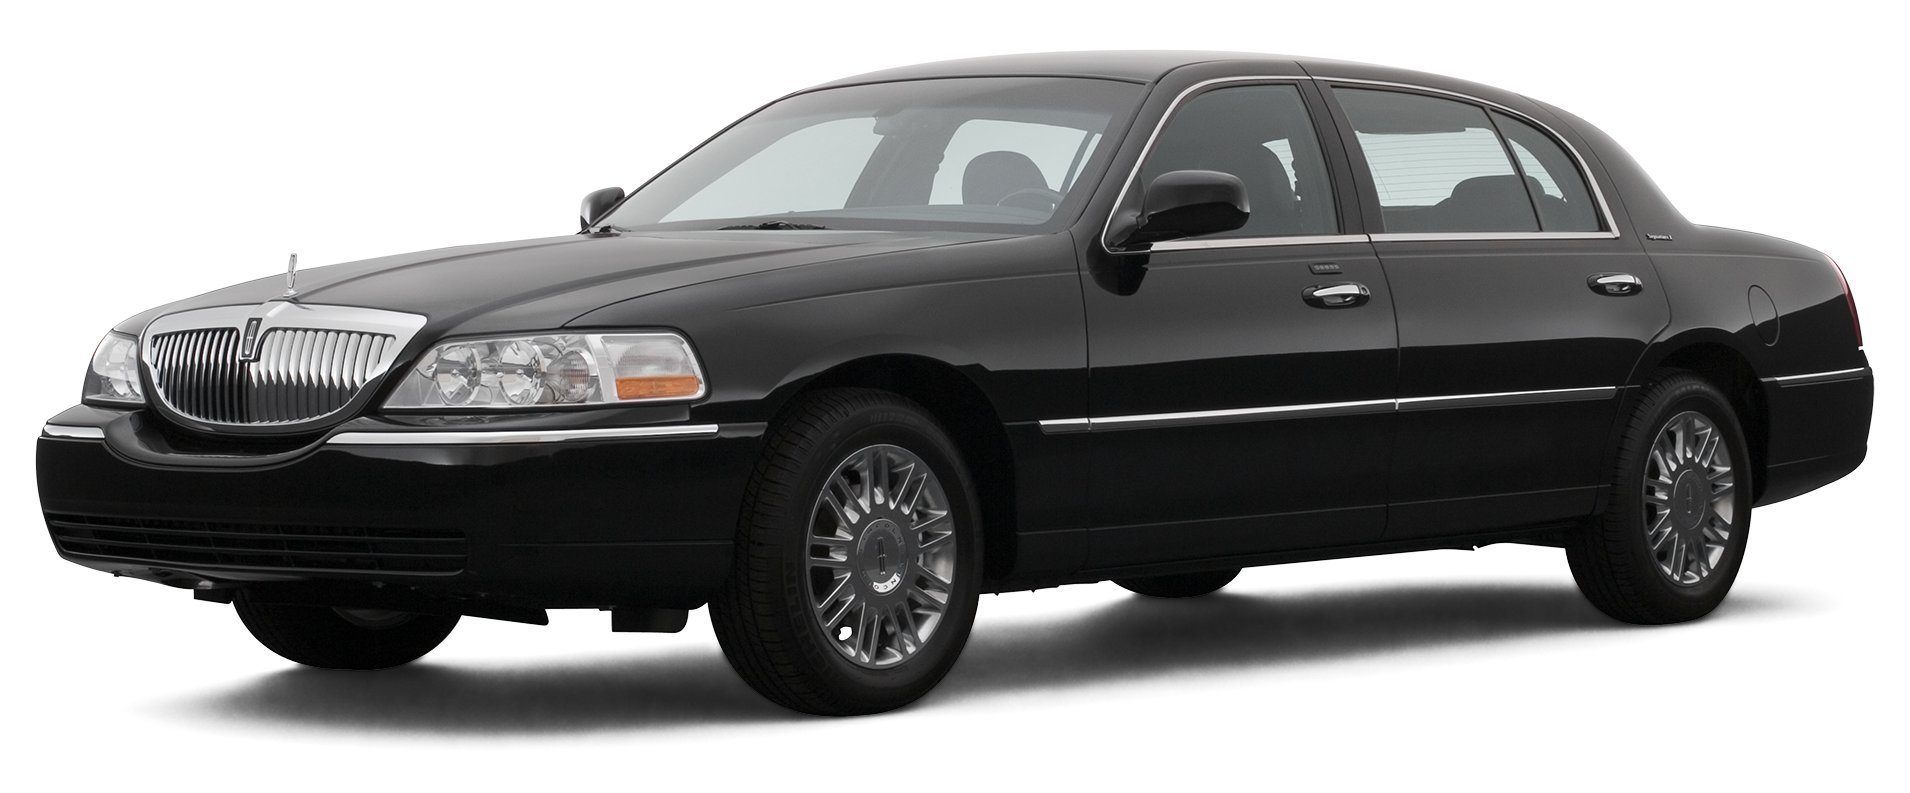 2007 mercury grand marquis reviews images and specs vehicles. Black Bedroom Furniture Sets. Home Design Ideas